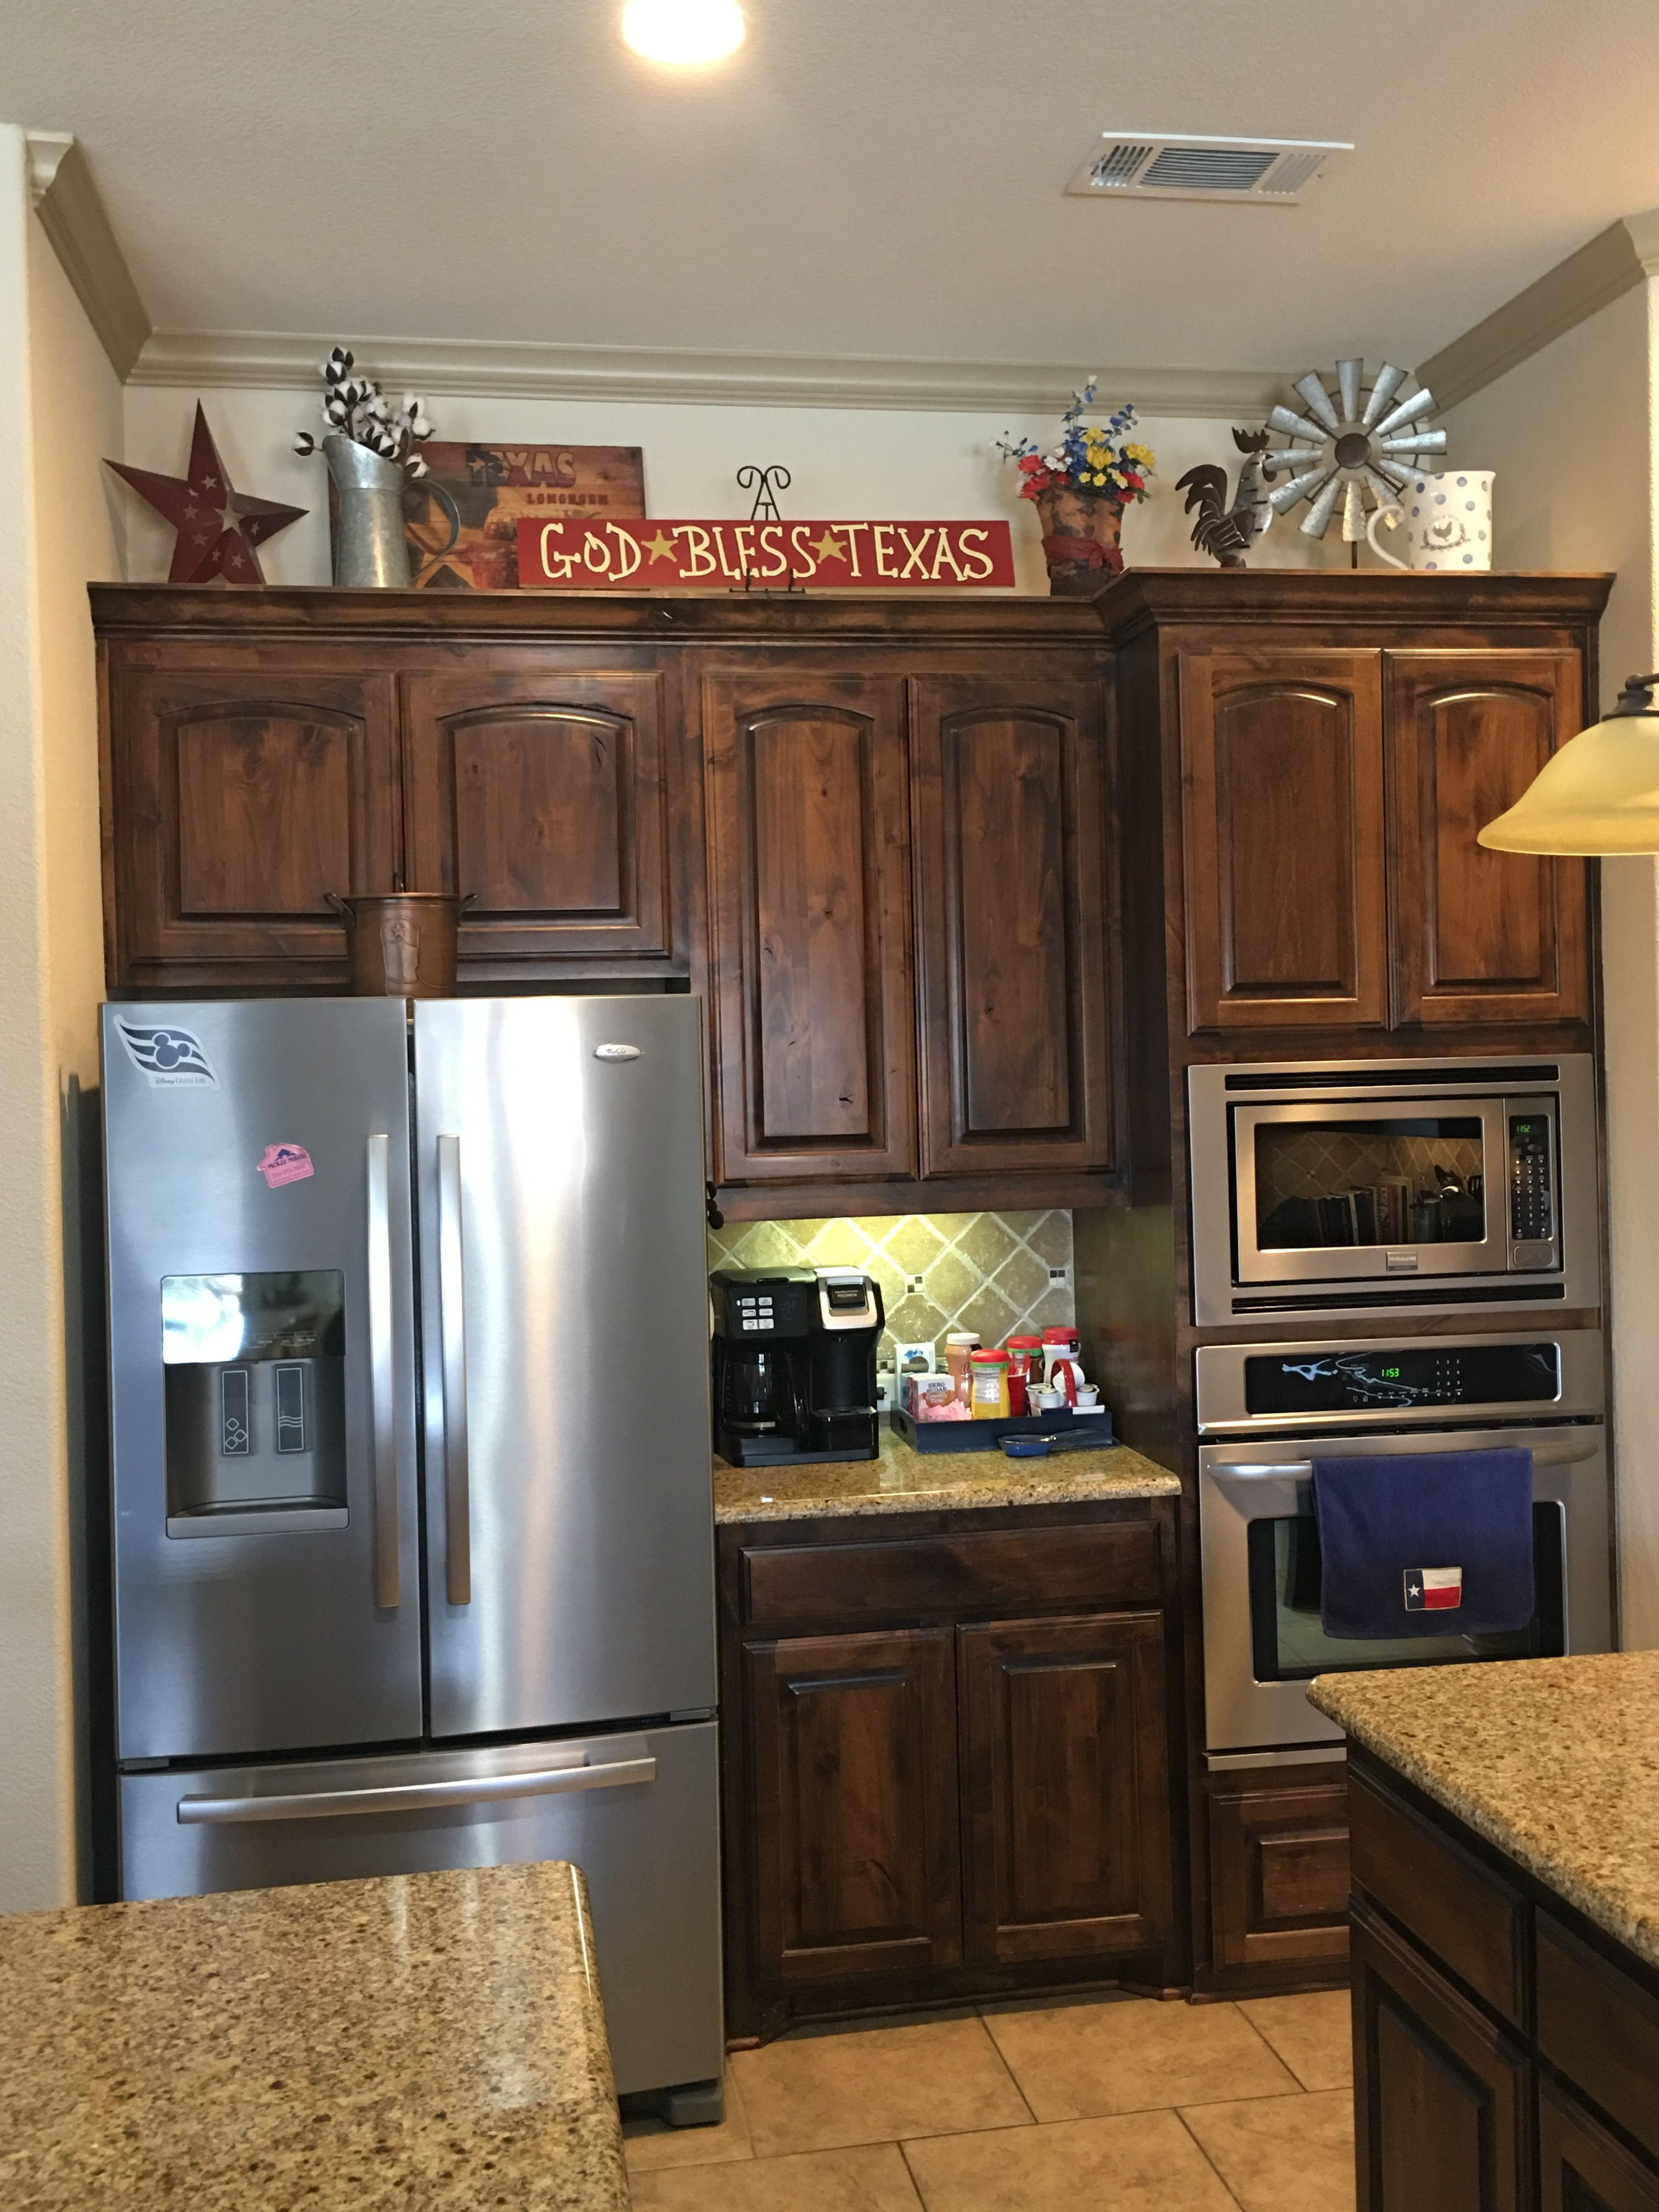 Pin By Tisha Ashlin On Top Of Kitchen Cabinets Kitchen Cabinets And Countertops Kitchen Cabinets Decor Decorating Above Kitchen Cabinets